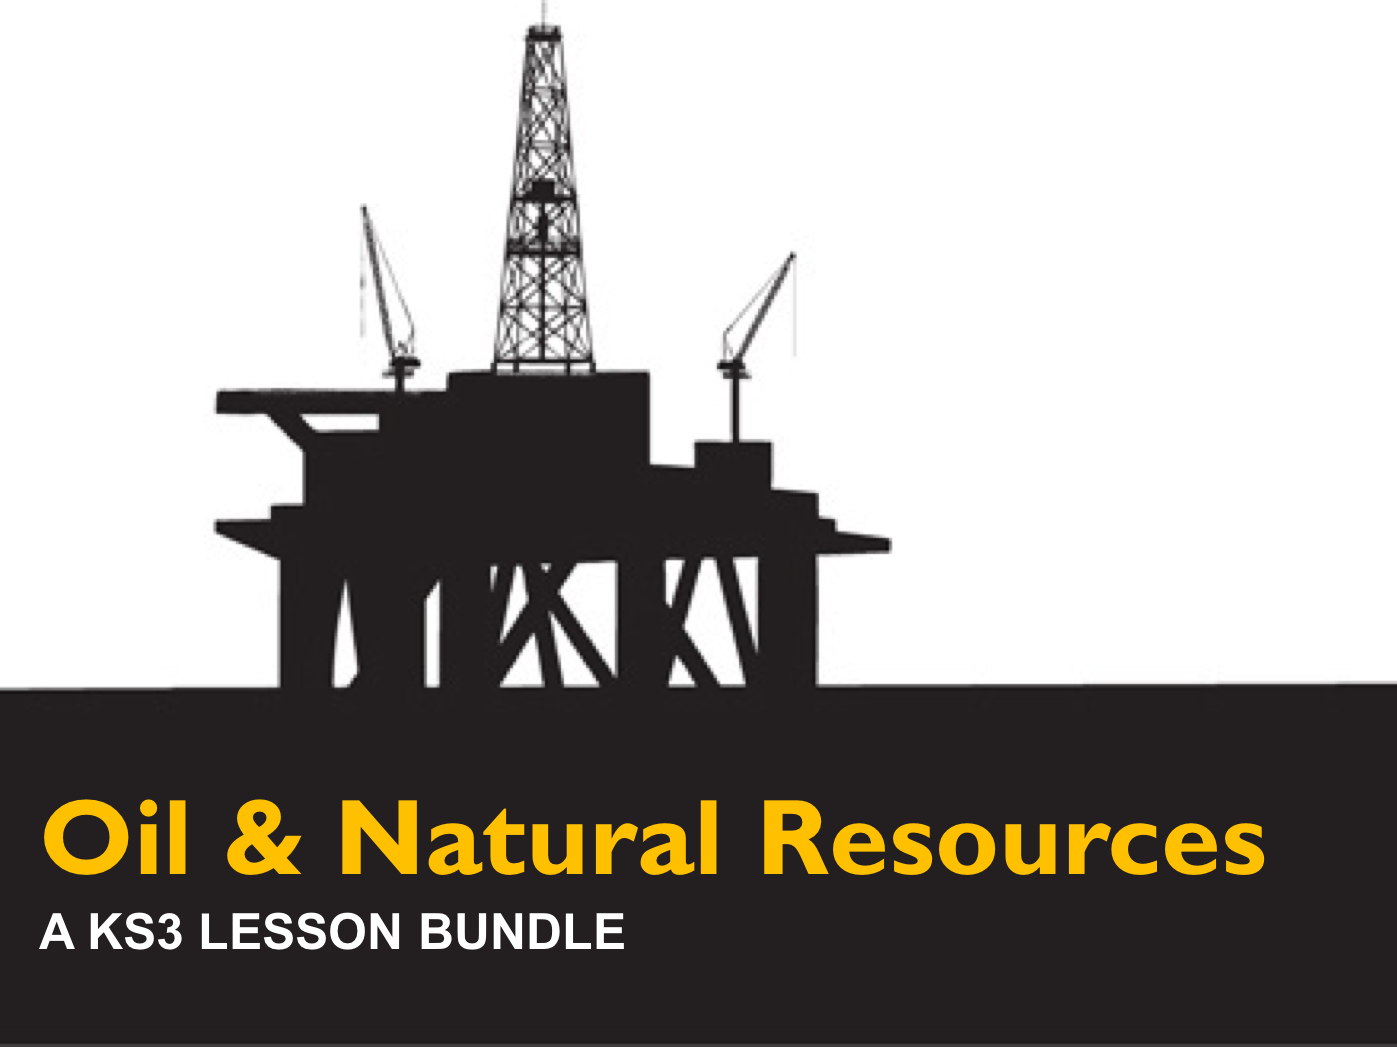 Oil & Natural Resources Bundle- A KS3 Bundle